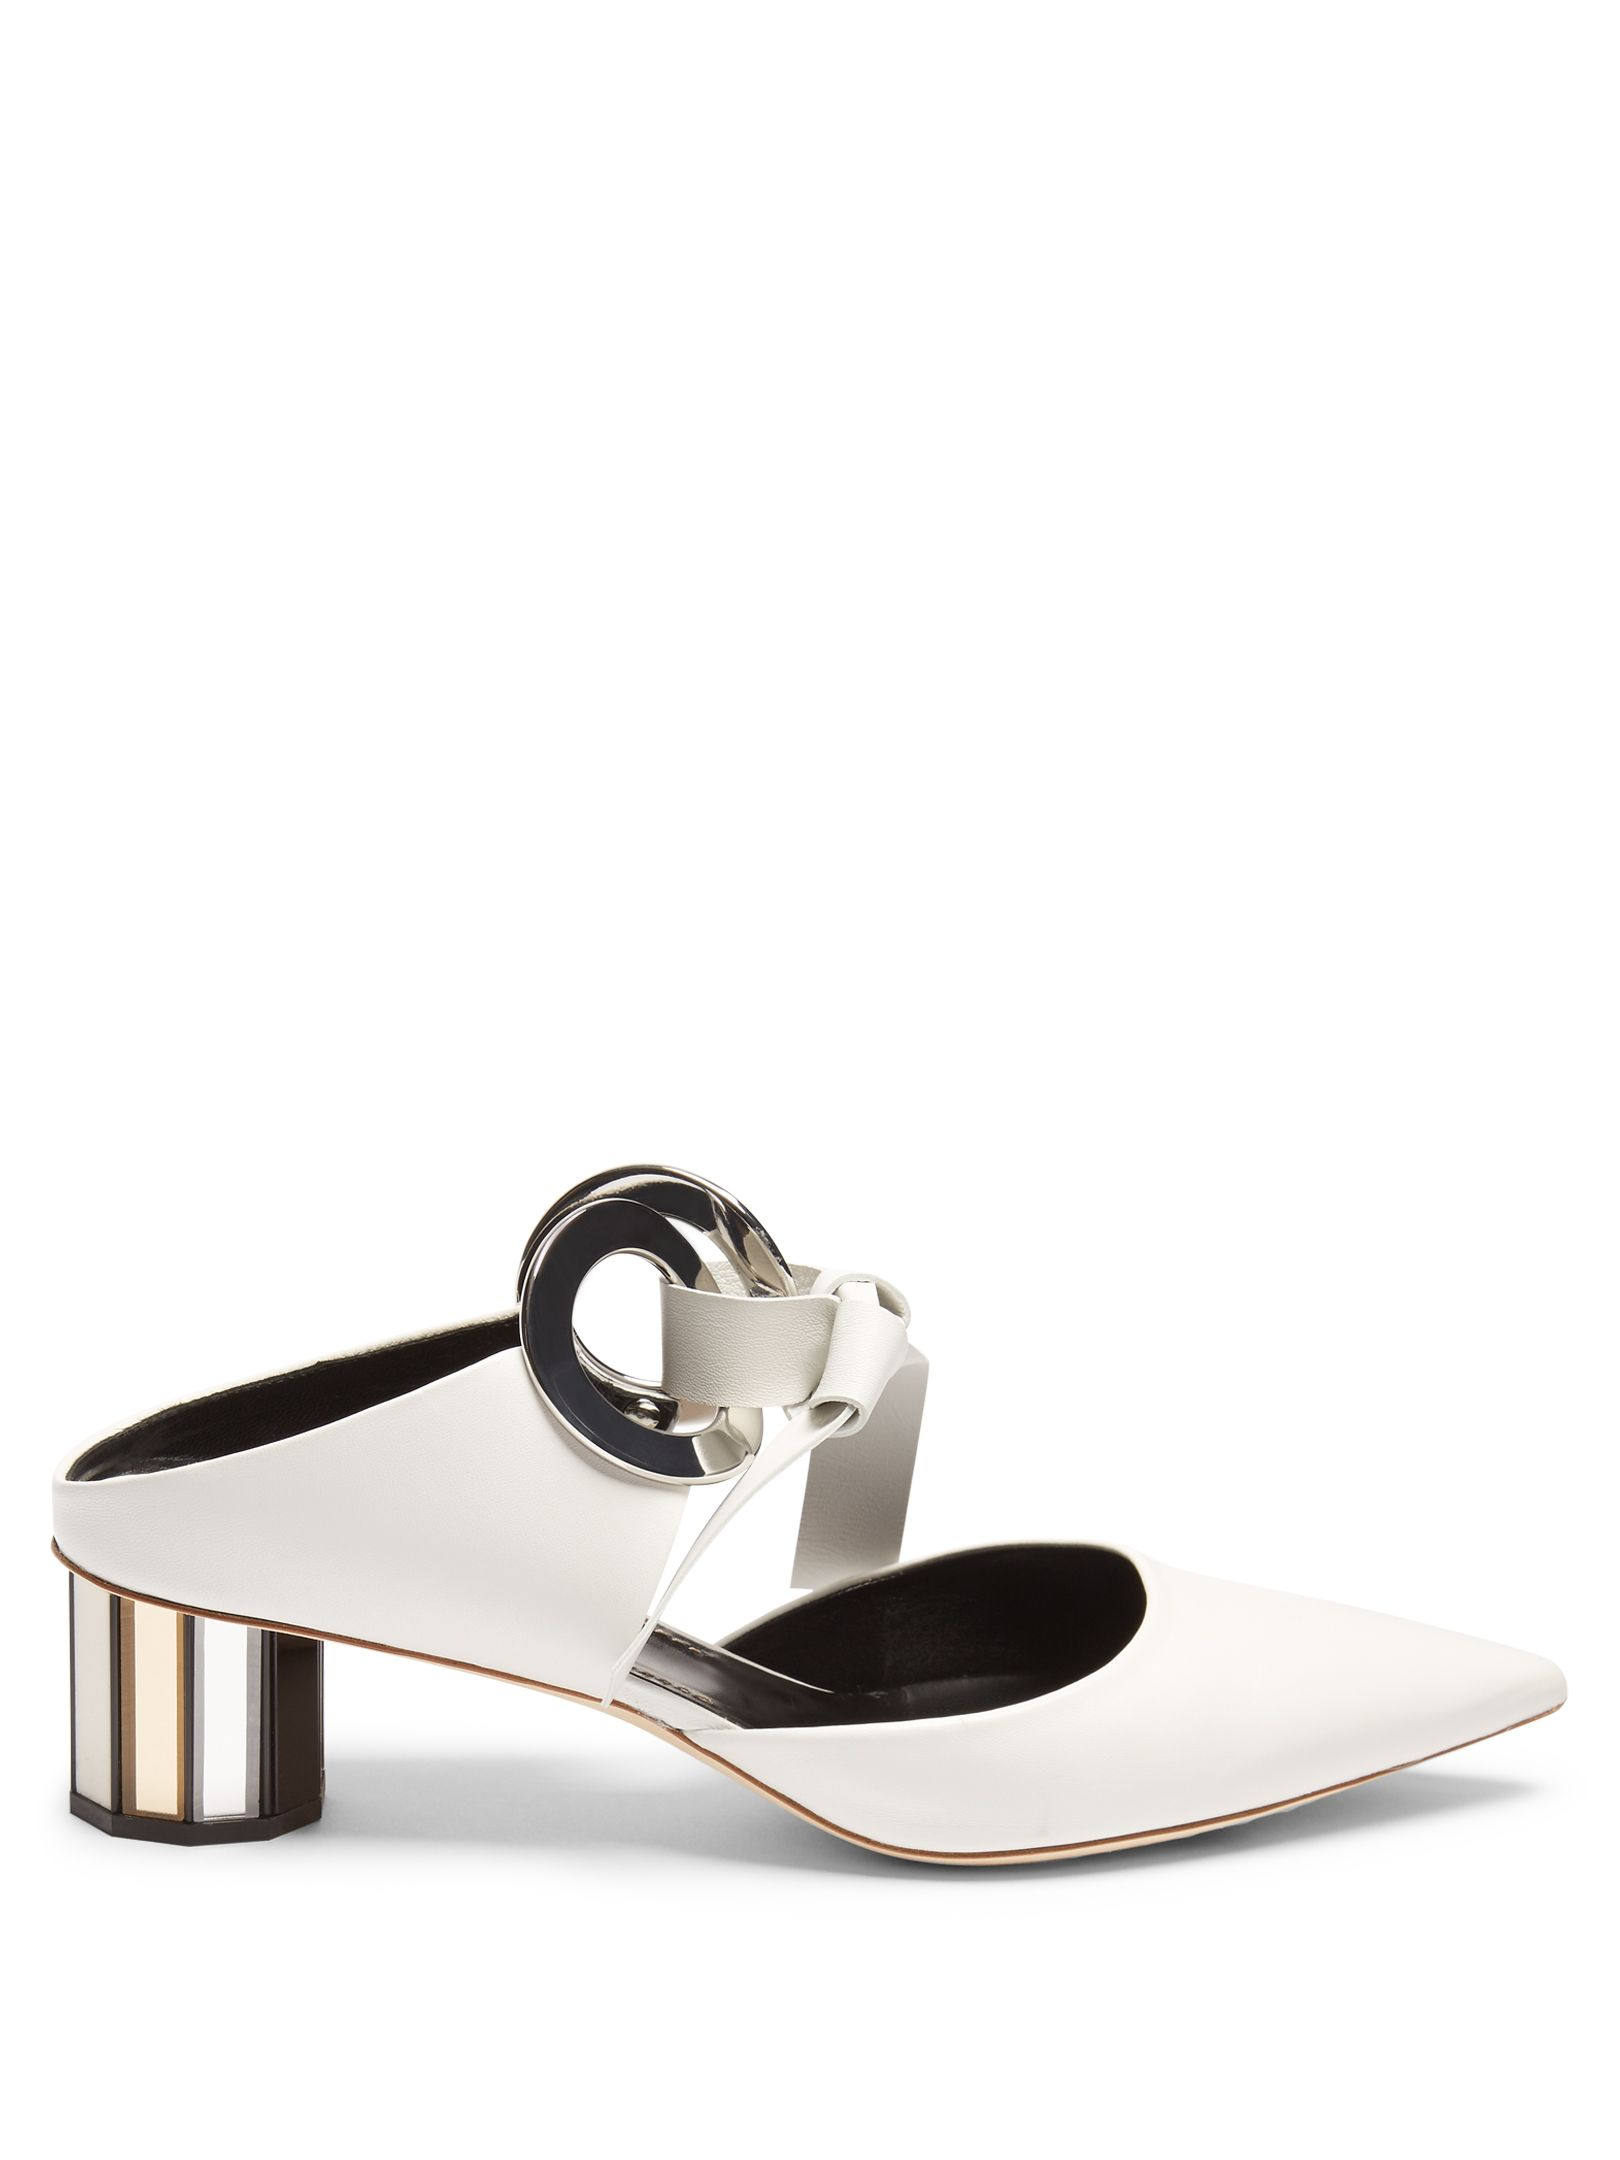 Proenza Schouler Leather slippers gLqntwctN